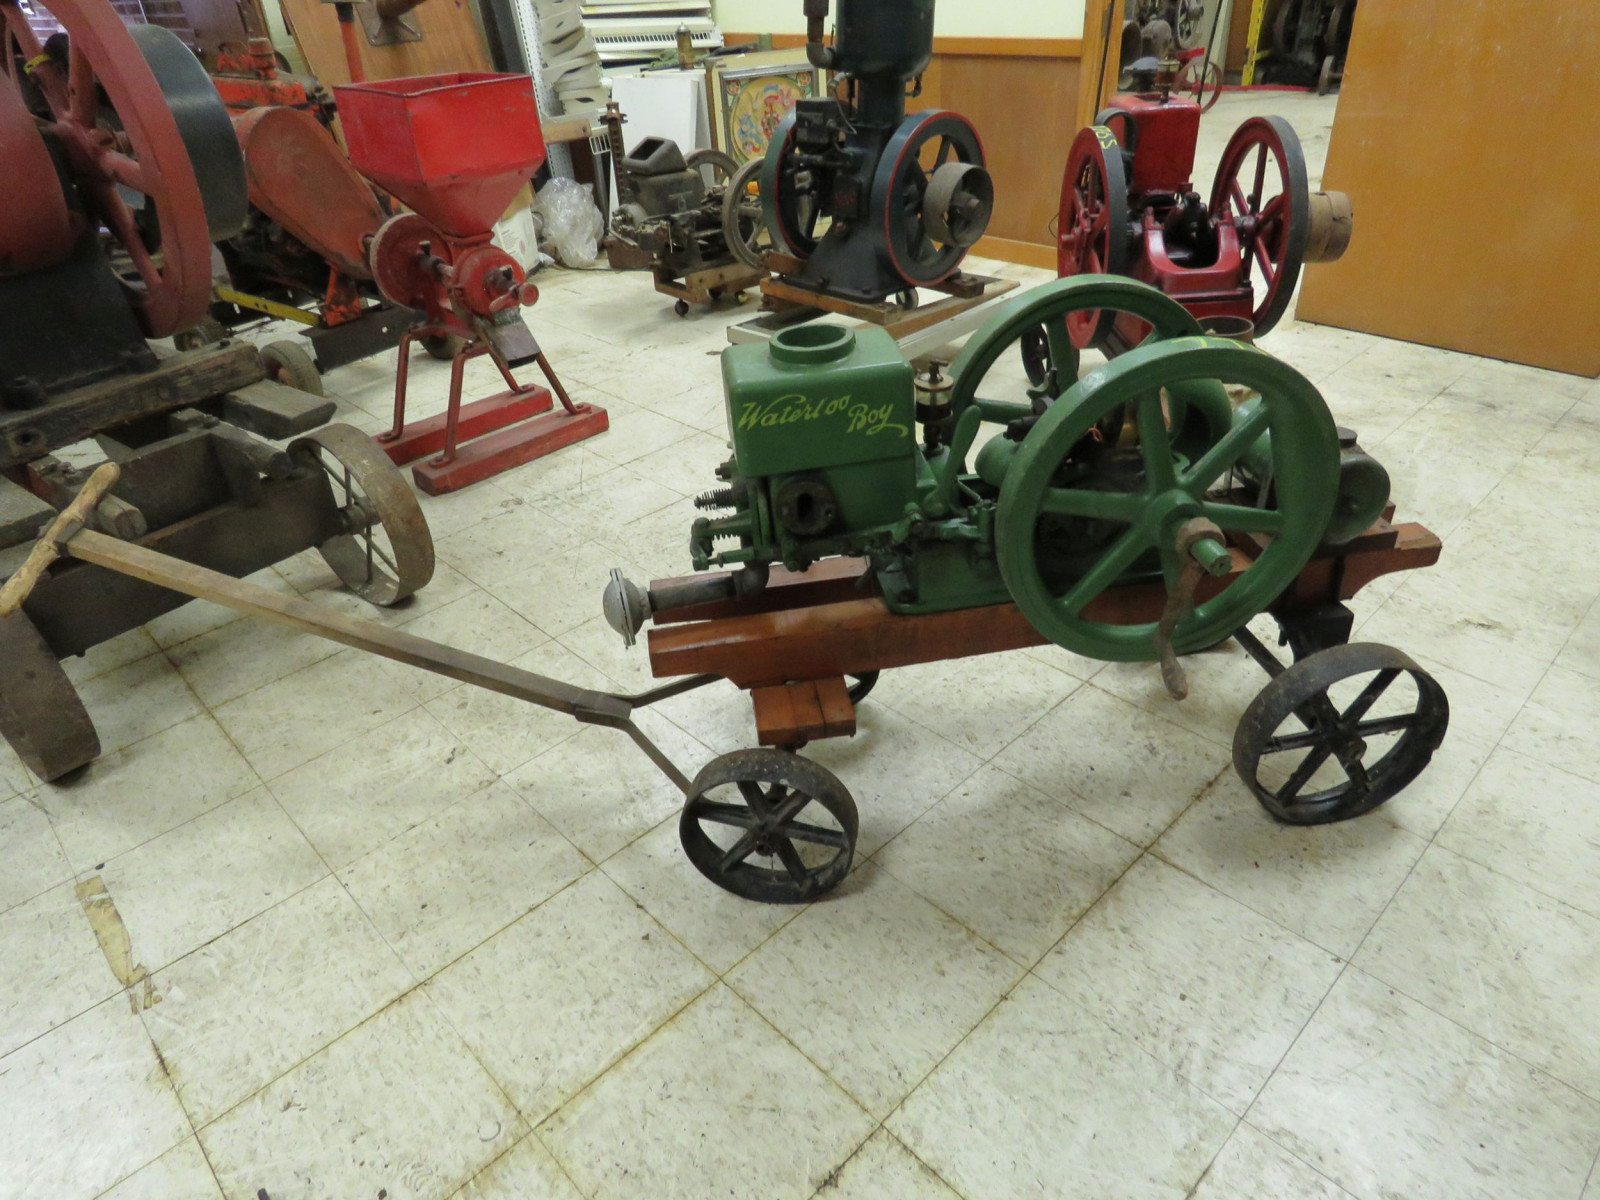 Waterloo Boy Stationary Gas Engine on Cart - Image 1